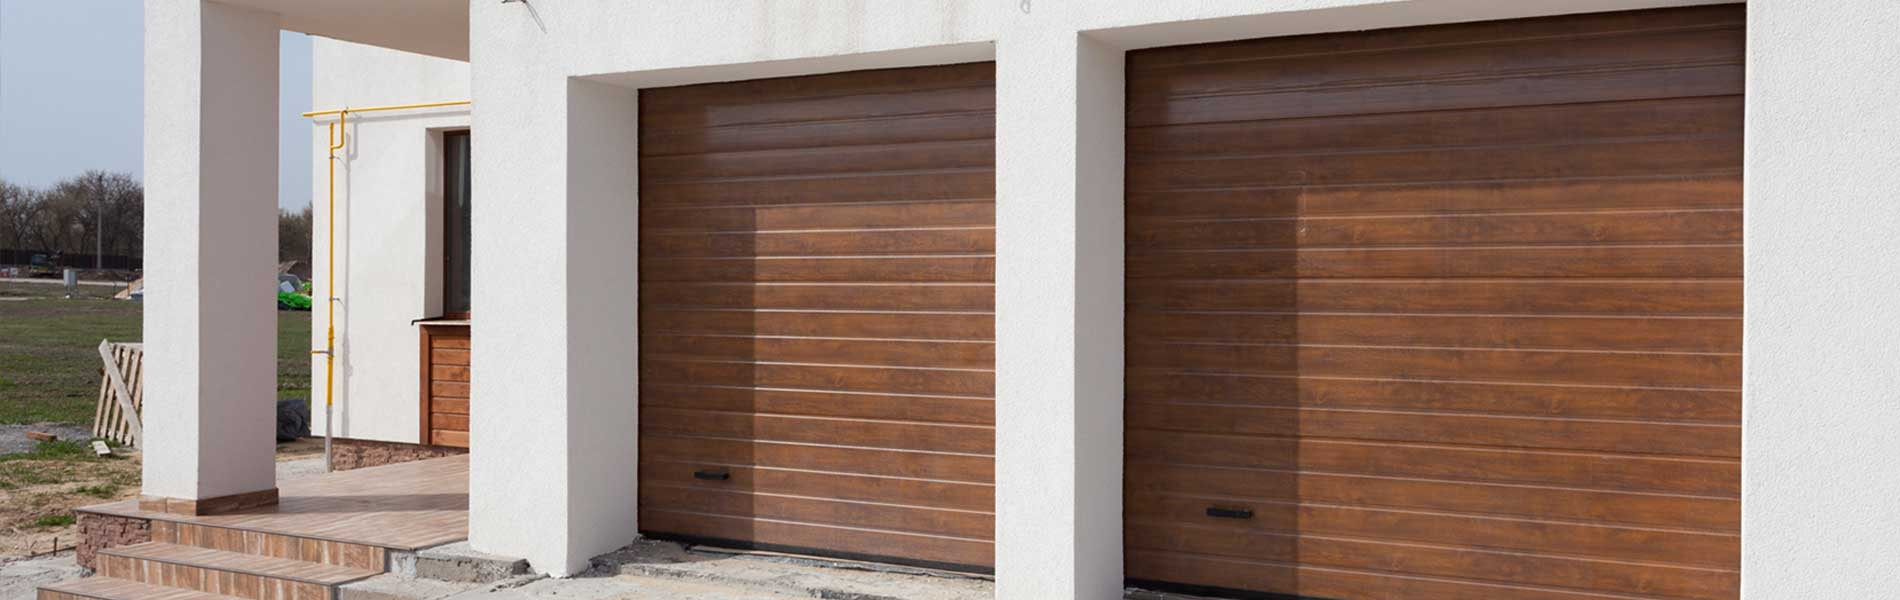 Elite Garage Door Service, Swansea, MA 508-505-4343